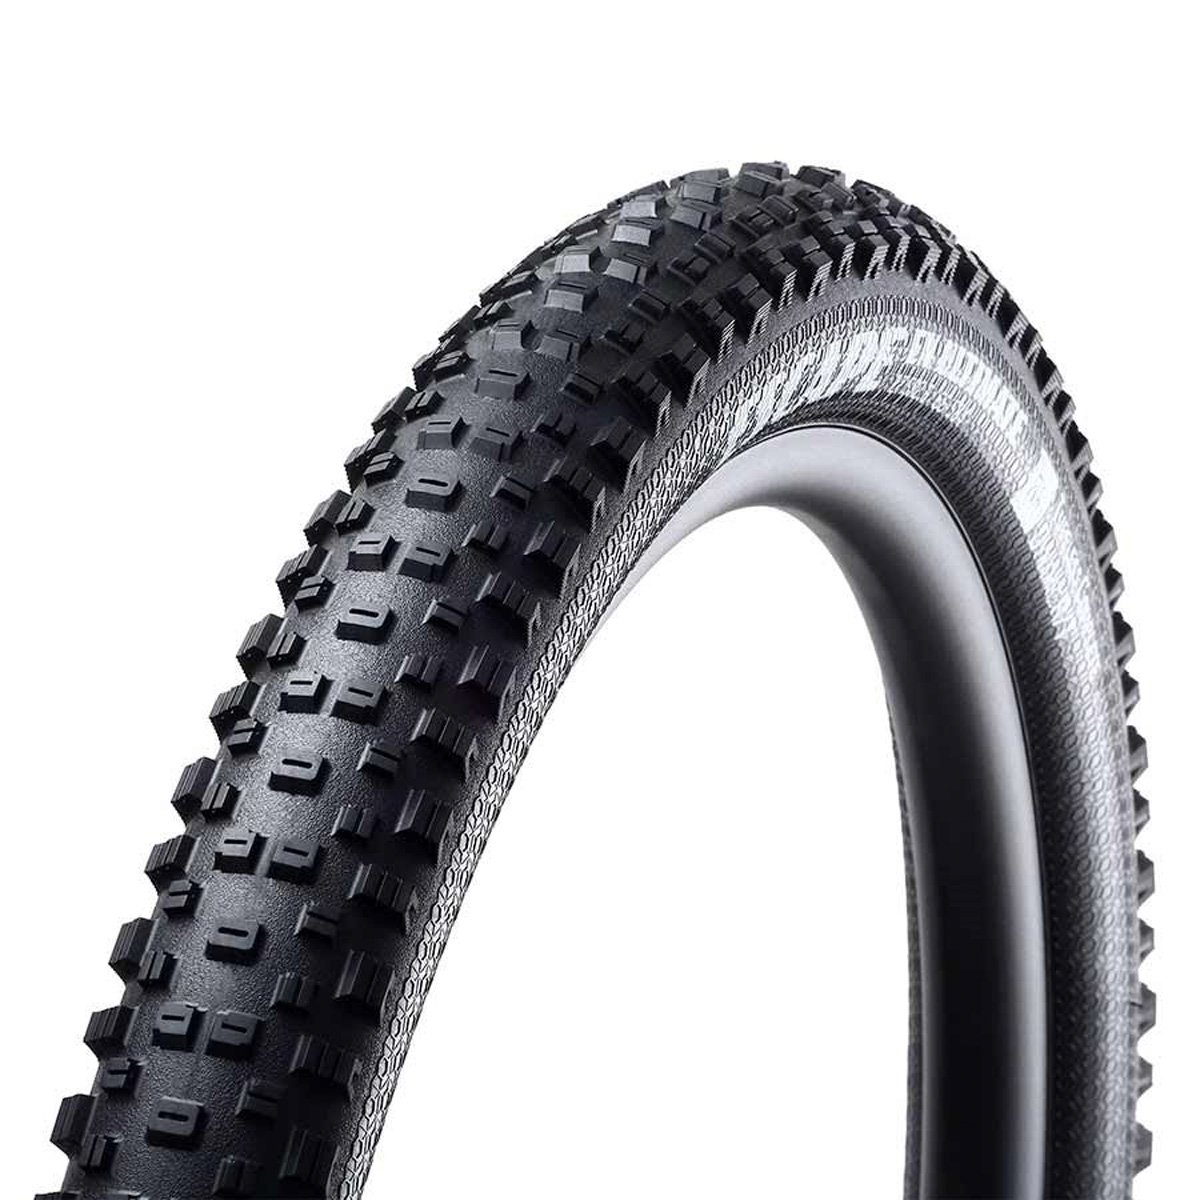 Goodyear Escape Tire, 29''x2.35'', Folding, Tubeless Ready, Dynamic:R/T, Ultimate, 120TPI, Black by Goodyear